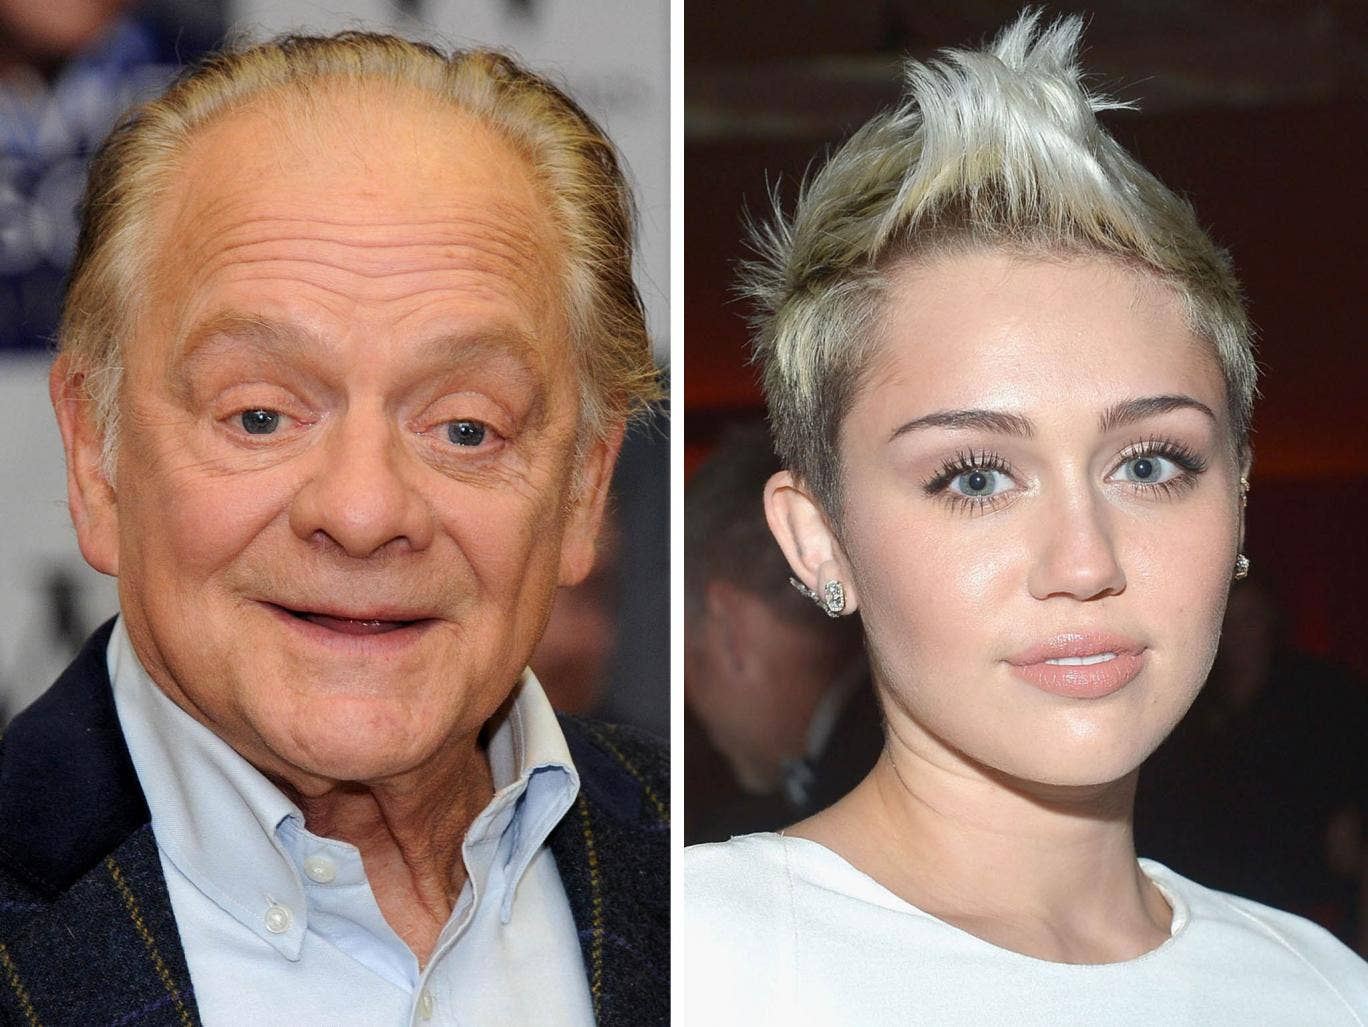 Quite why David Jason waded in on the whole 'Miley Cyrus is a bad role model' debate remains somewhat unclear.